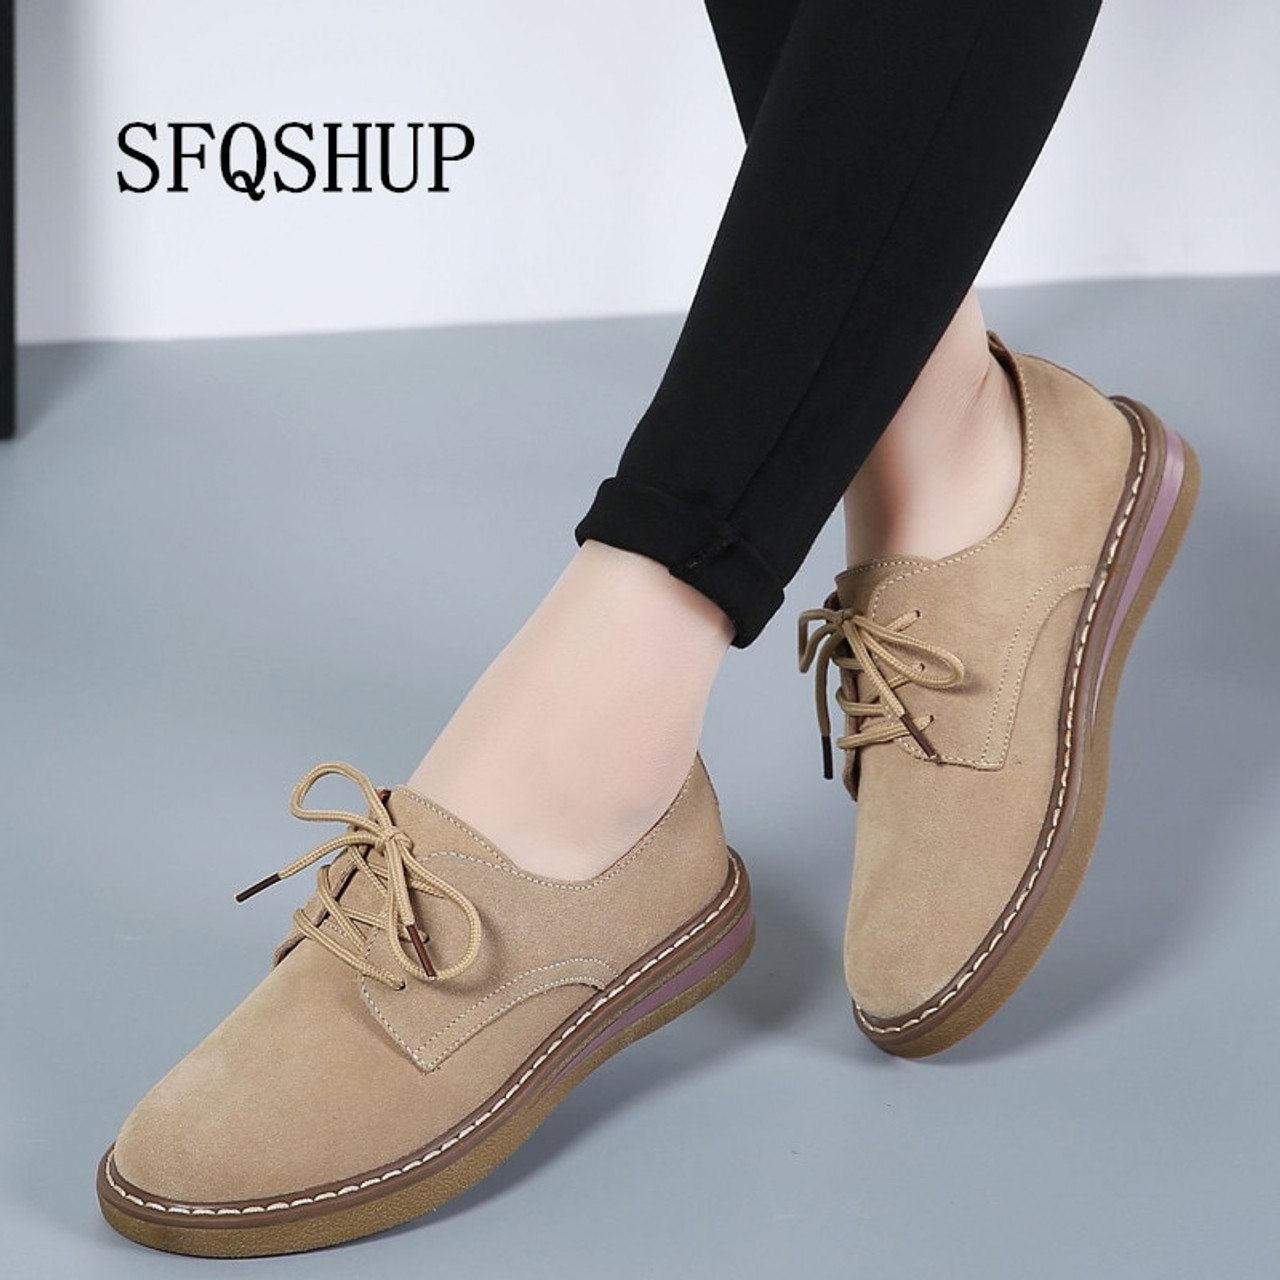 SFQSHUP Women's Shoes Genuine Leather